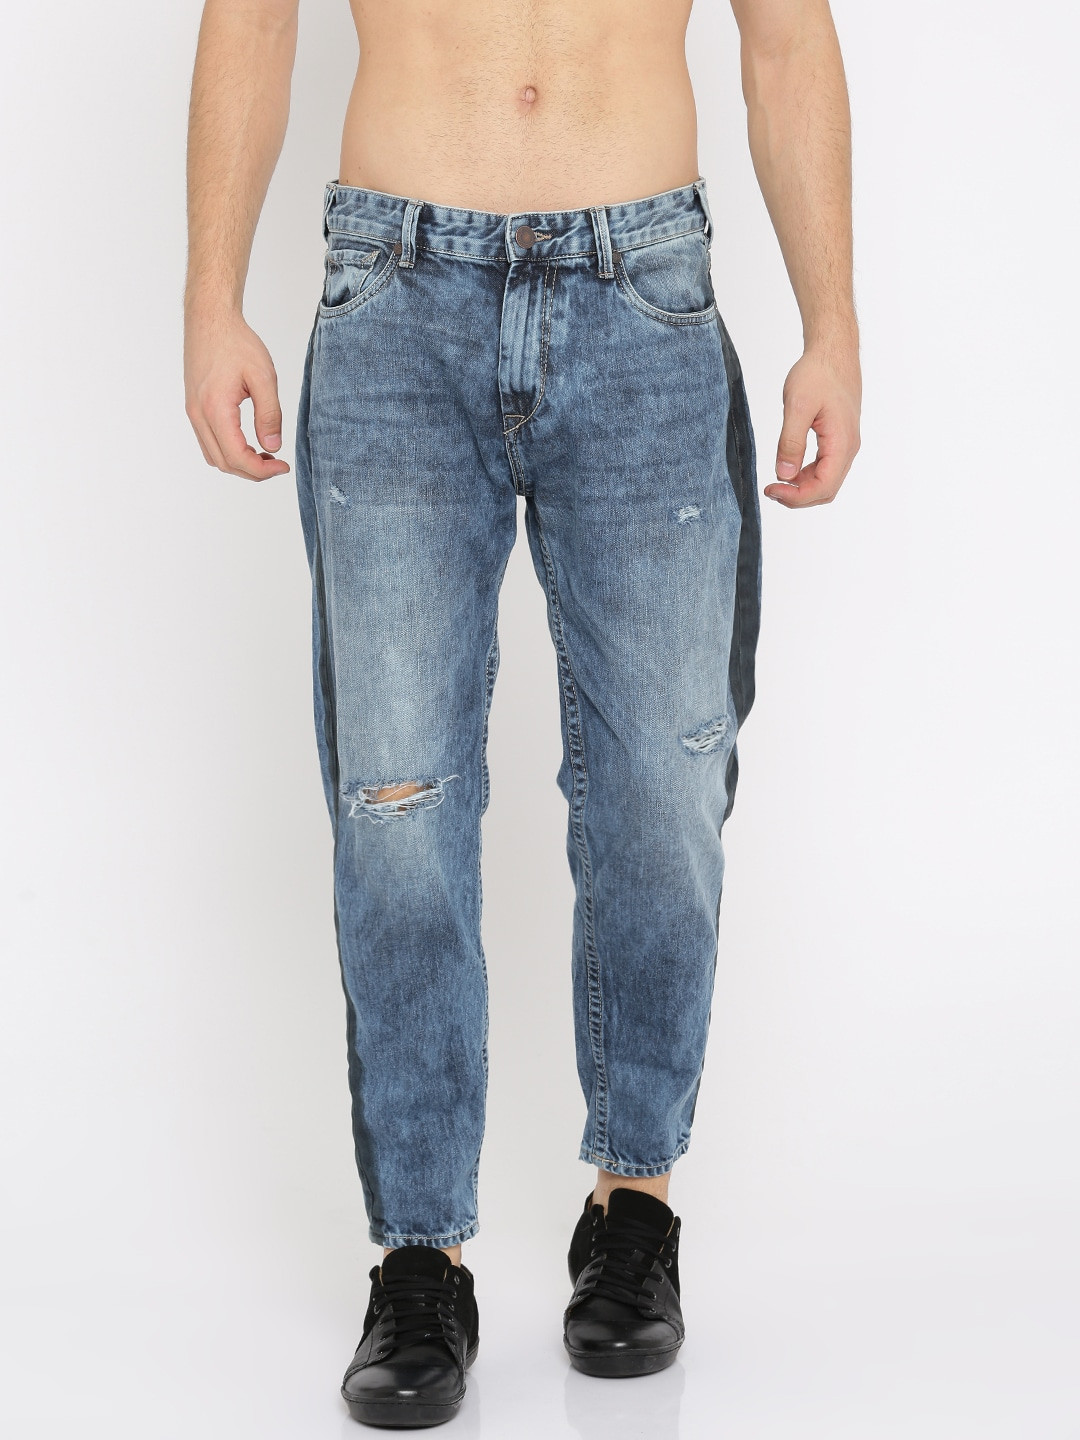 Moda Rapido Men Blue Slim Tapered Fit Mid-Rise Mildly Distressed Ankle-Length Jeans image